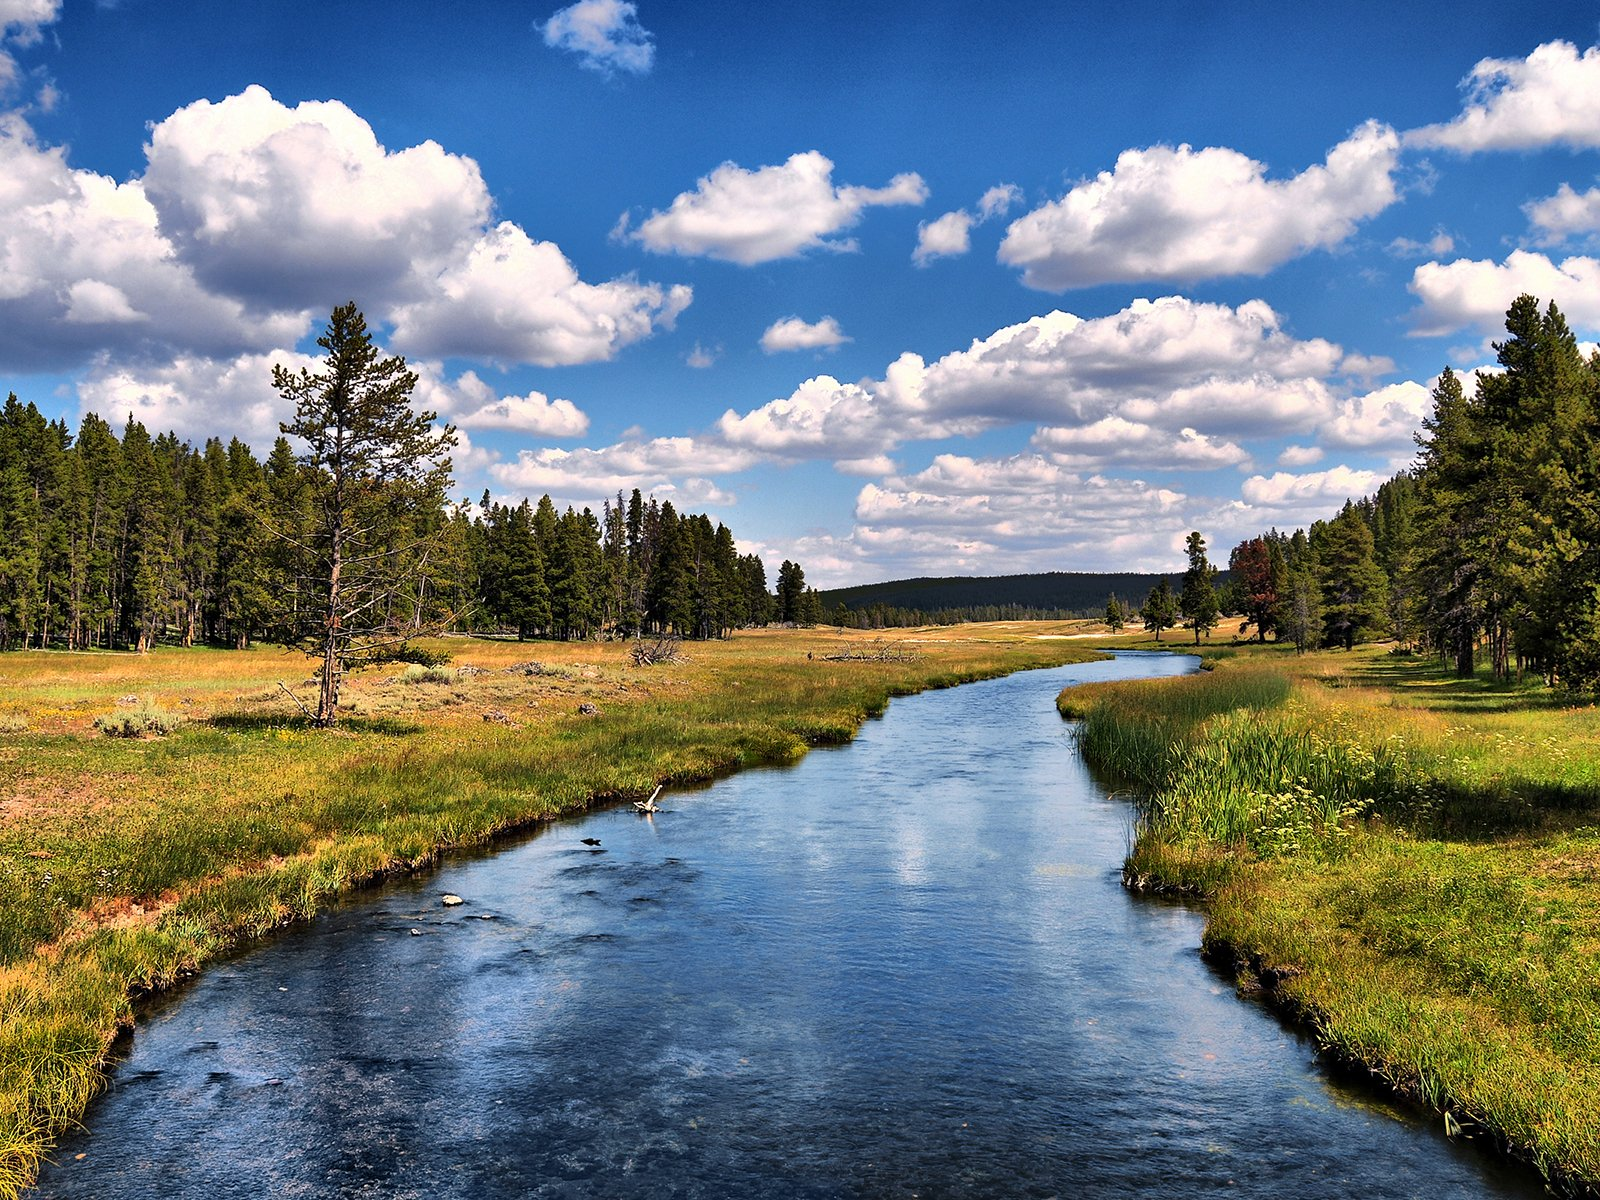 Yellowstone National Park Wallpapers and Background Images   stmednet 1600x1200